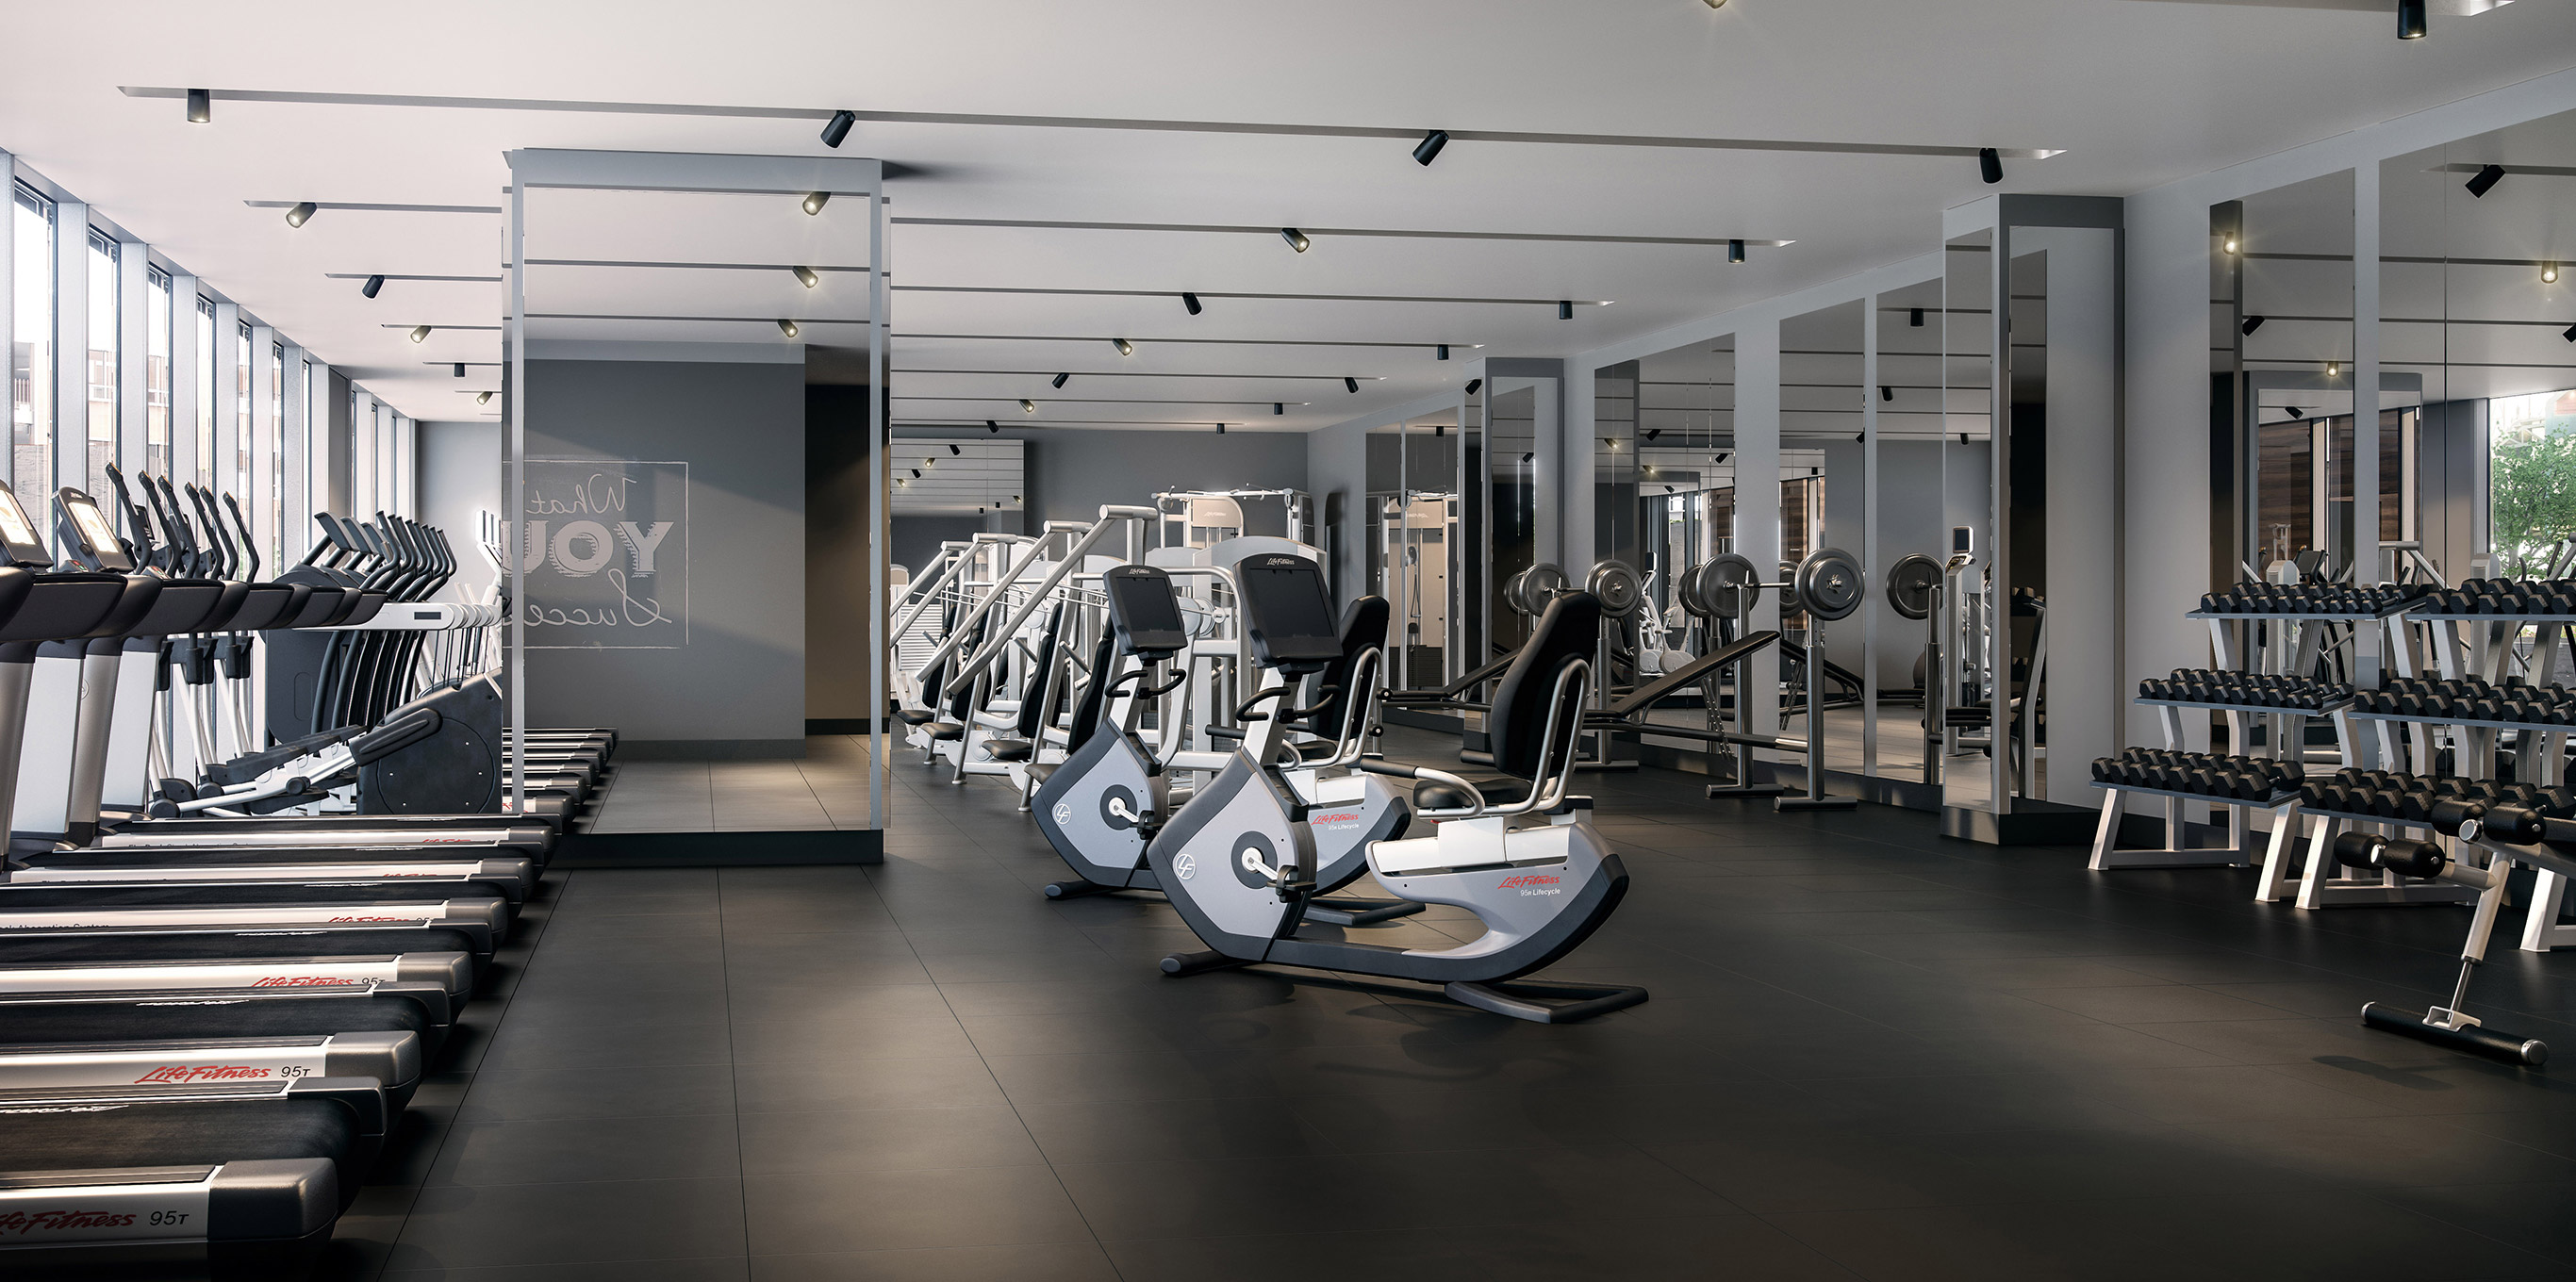 One Mission Bay fitness center